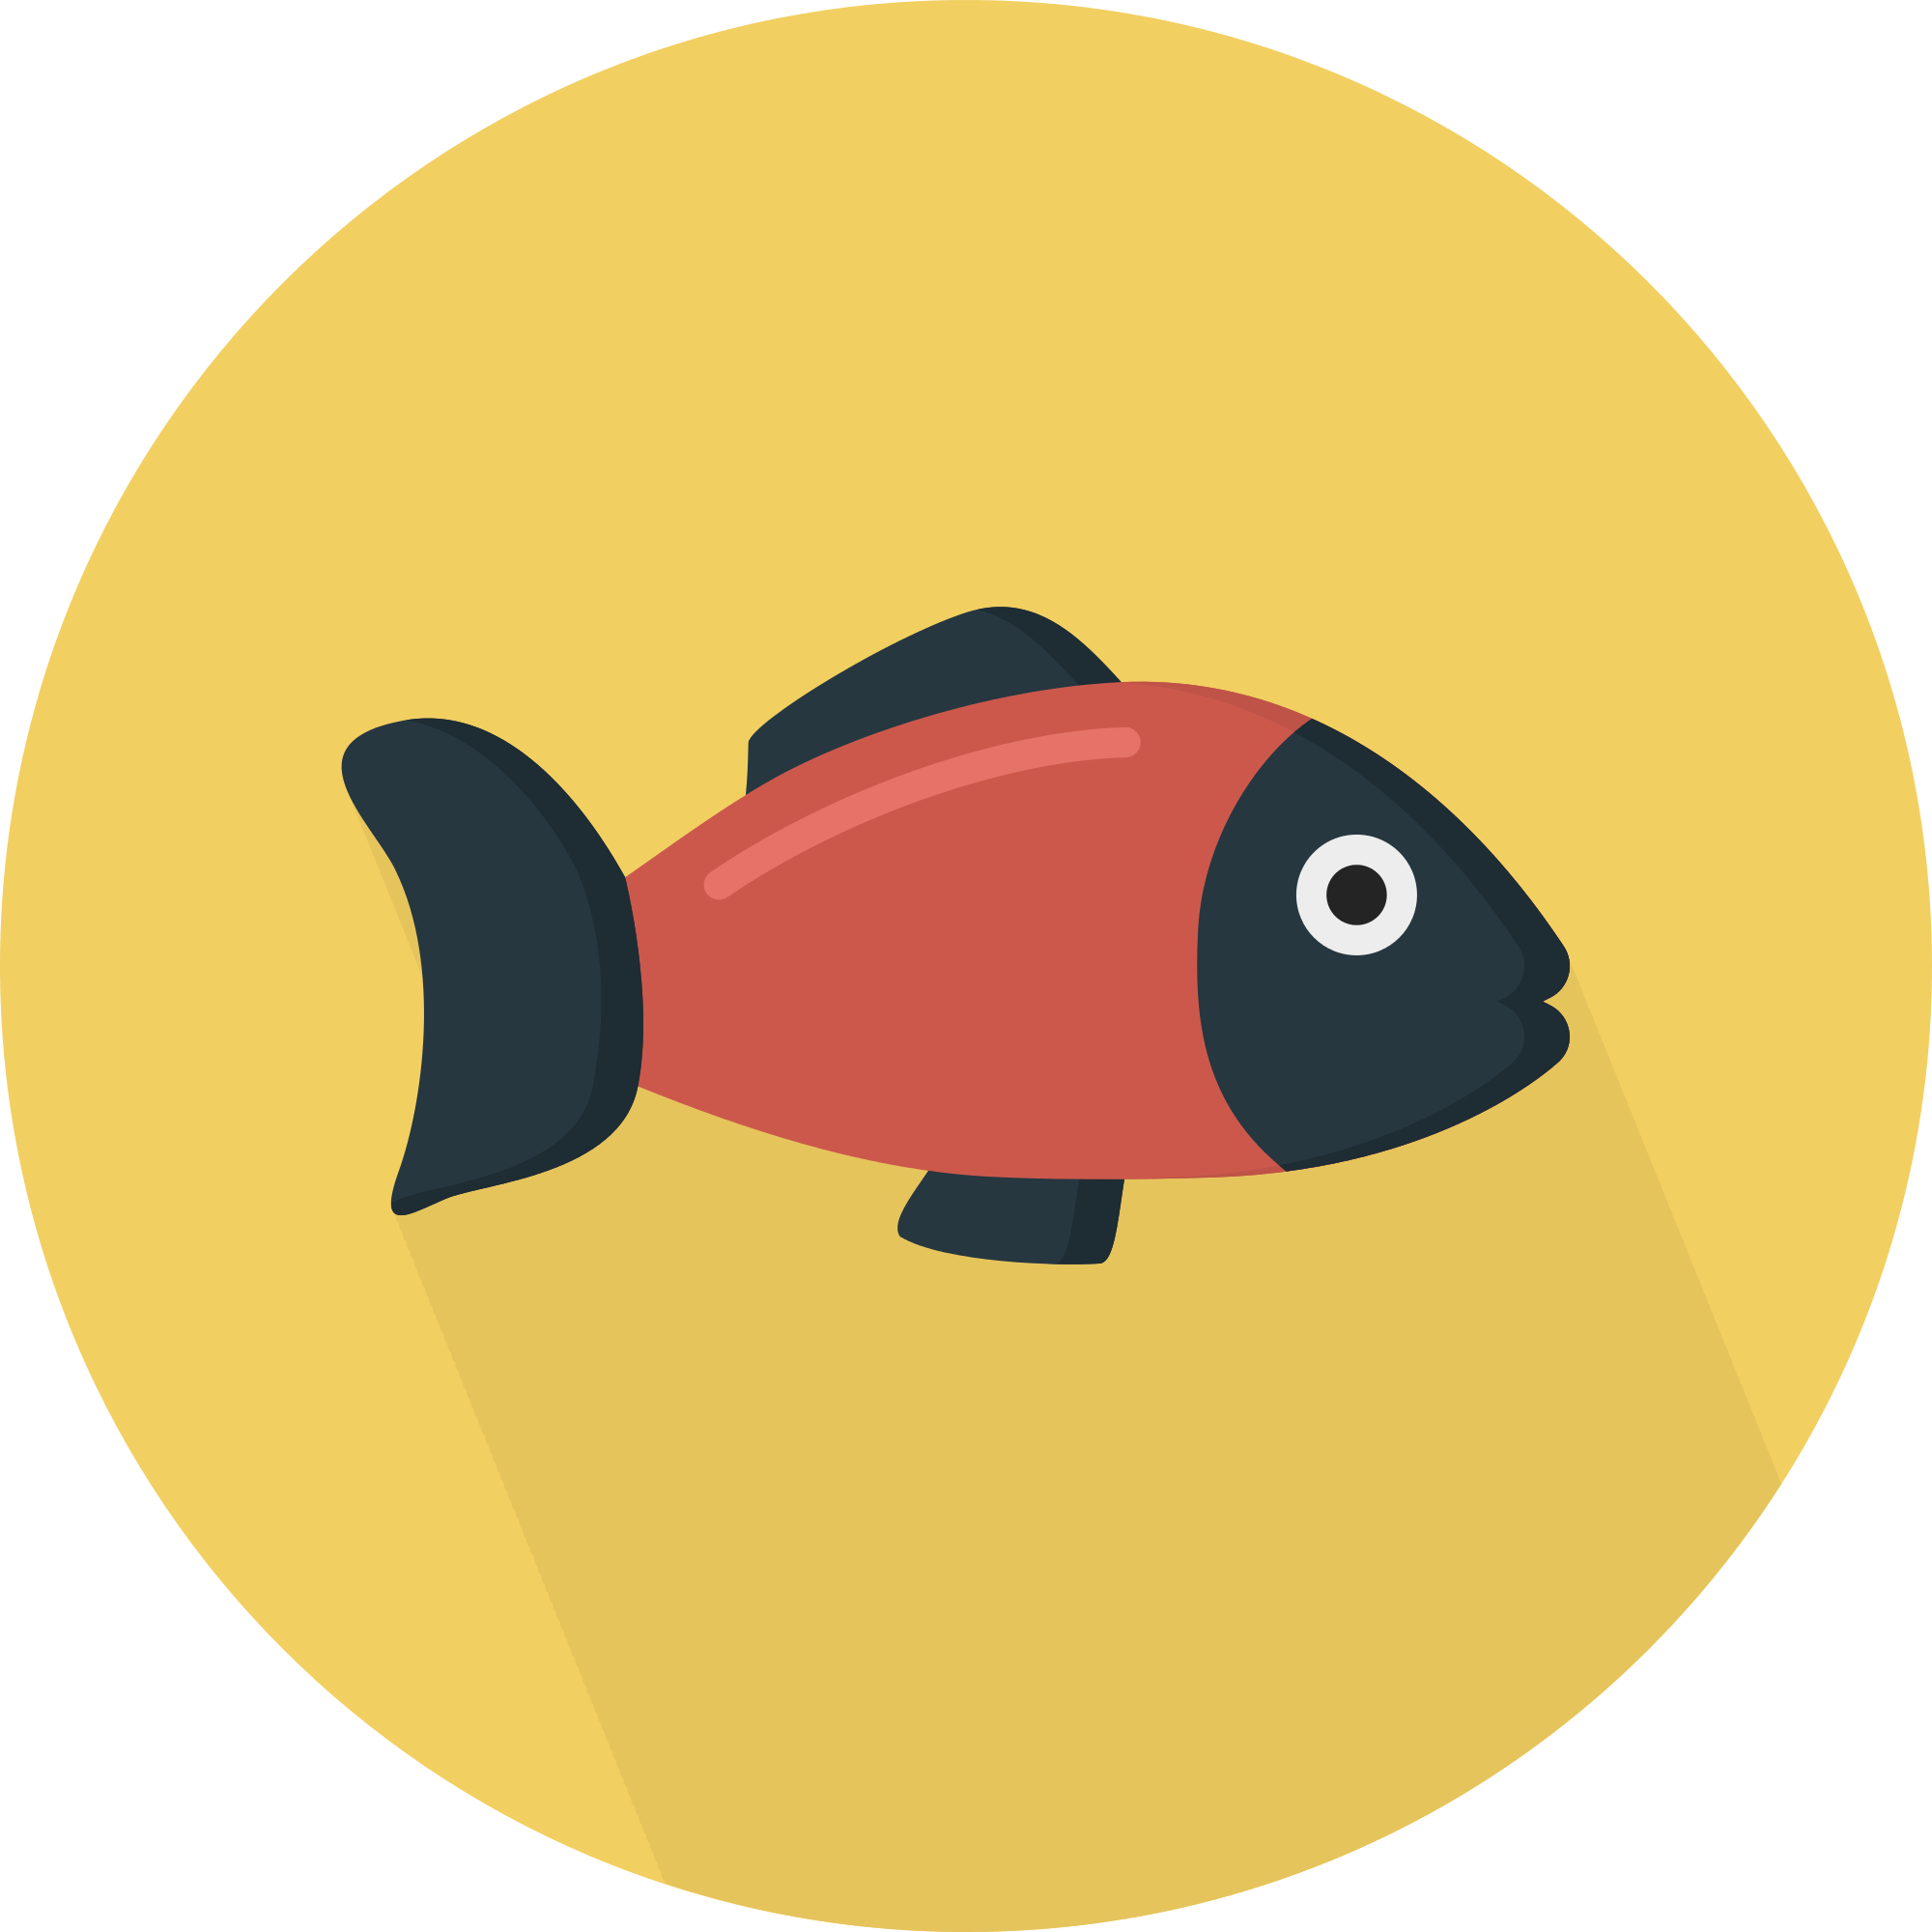 Pets clipart pet fish. Going troppo and all